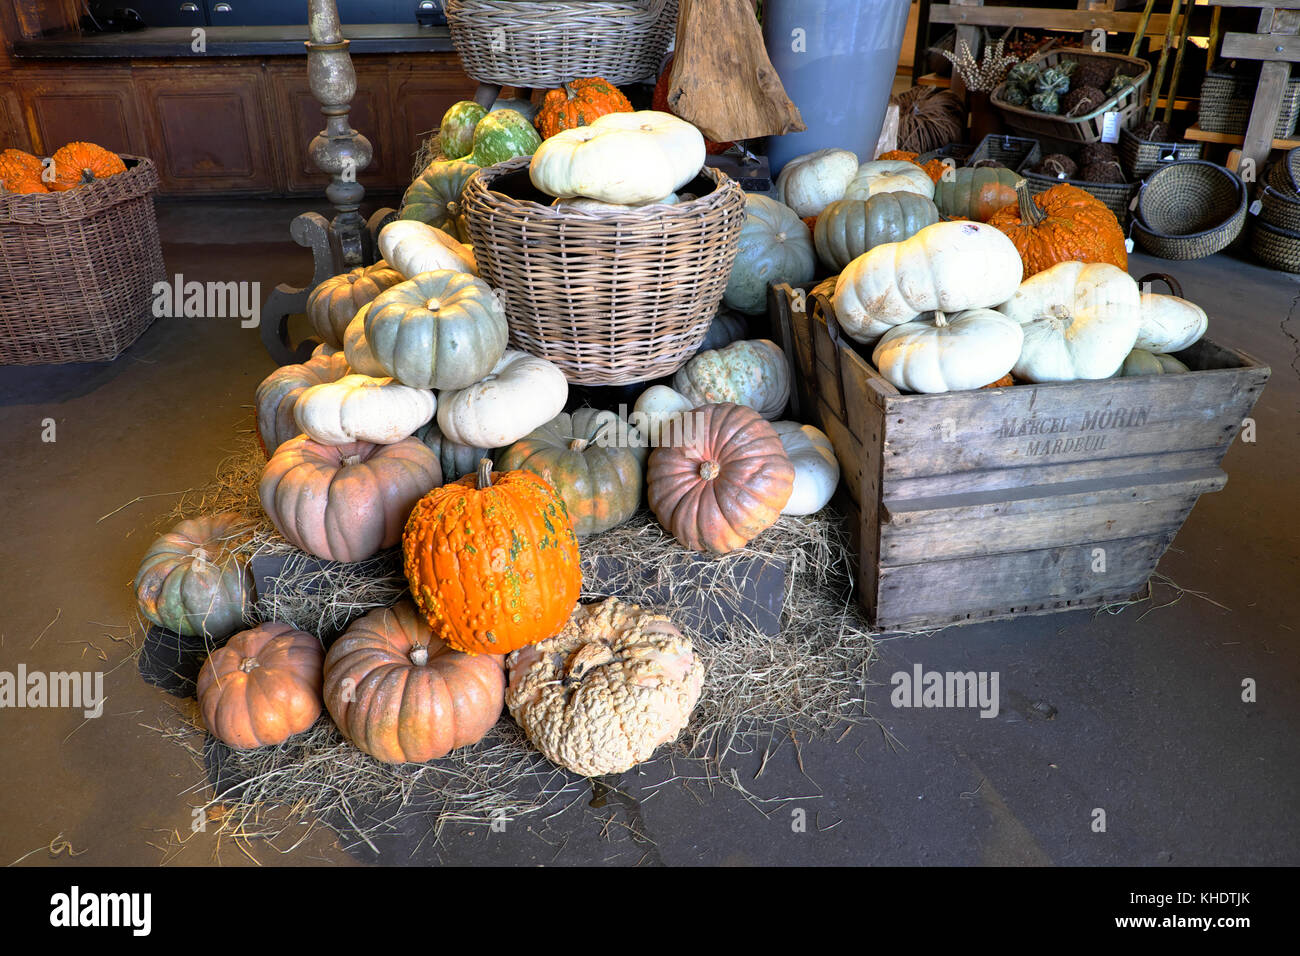 Selection of various gourds and pumpkins for sale at Halloween inside a garden centre shop in Los Angeles, California - Stock Image